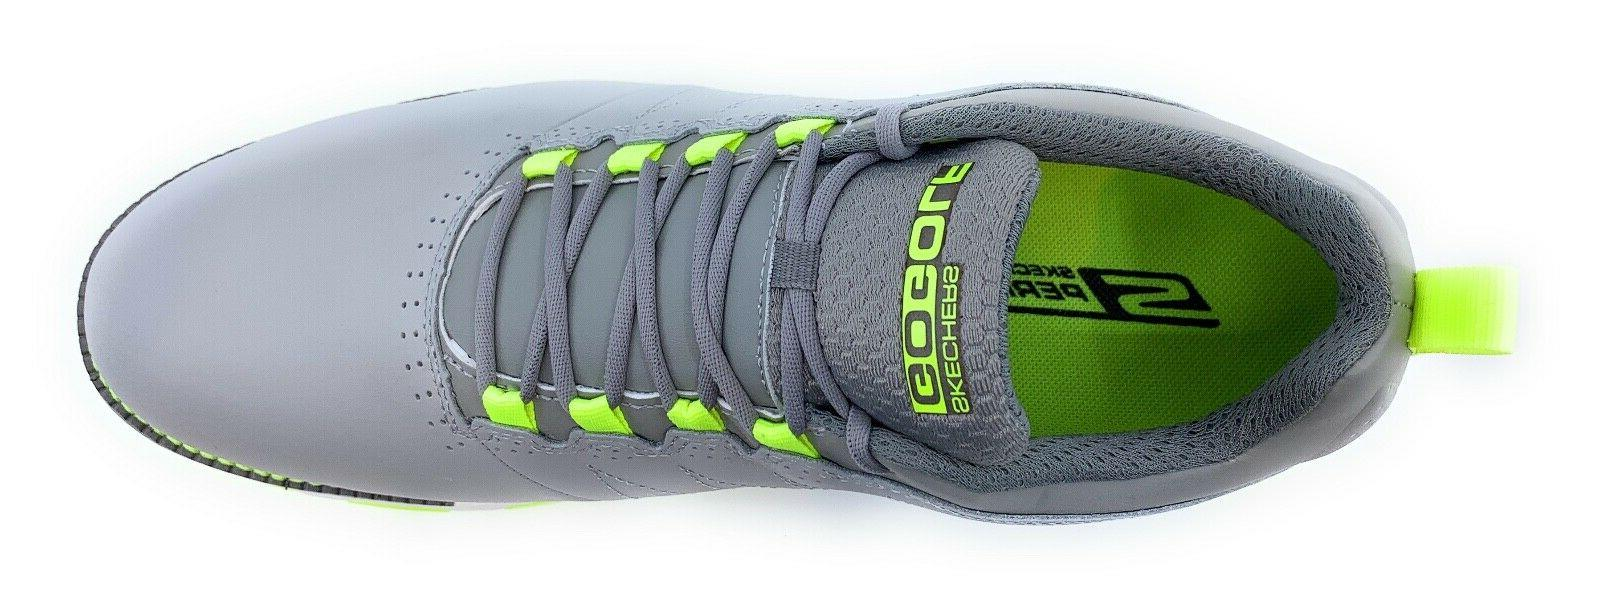 Skechers Leather Golf Elite Gray/Lime